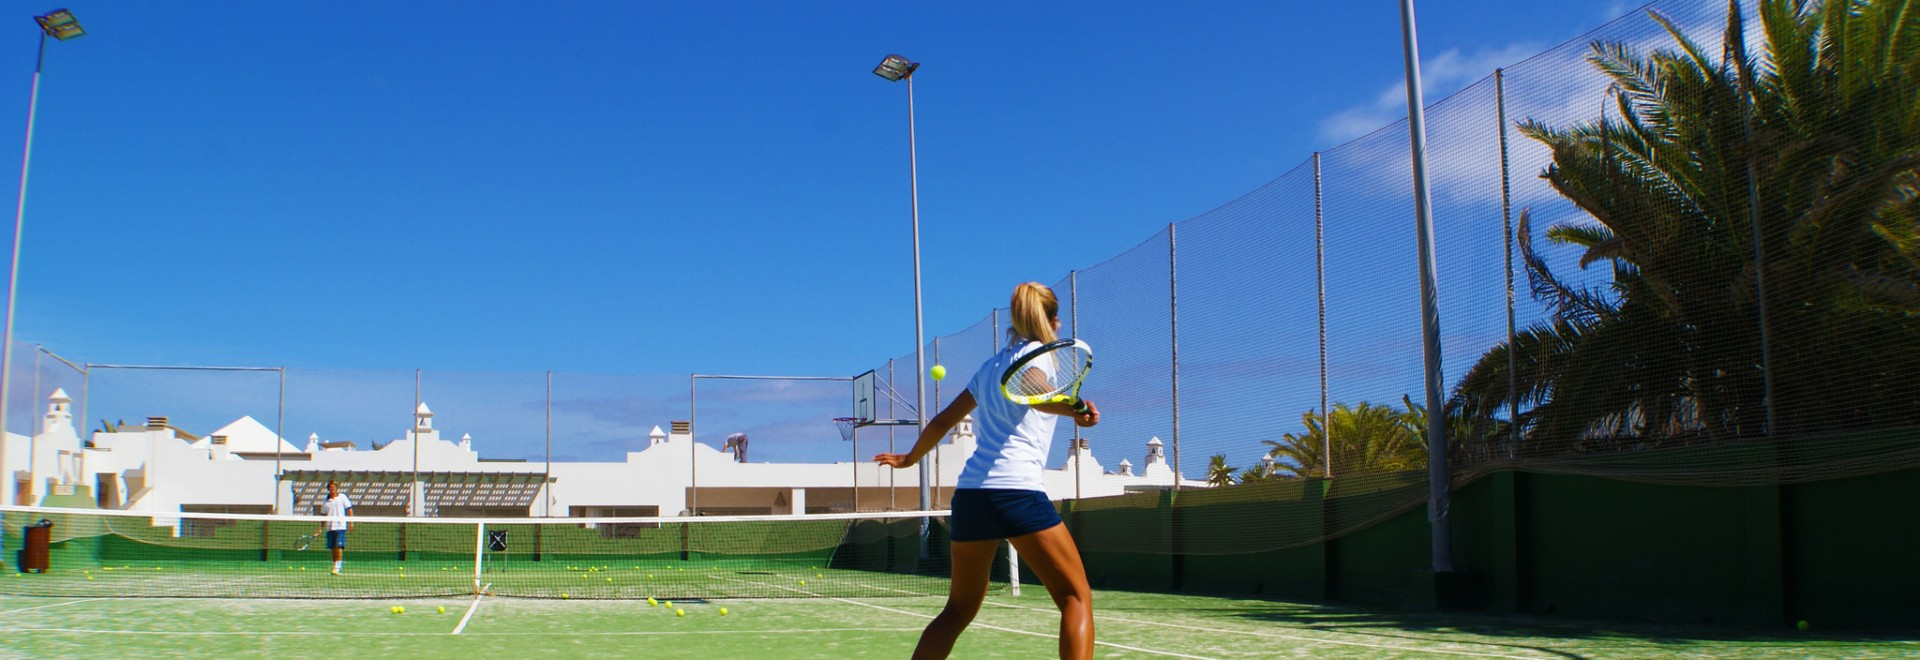 Individual Tennis Training (Adult or Junior) - Corralejo Tennis Academy, Canary Islands